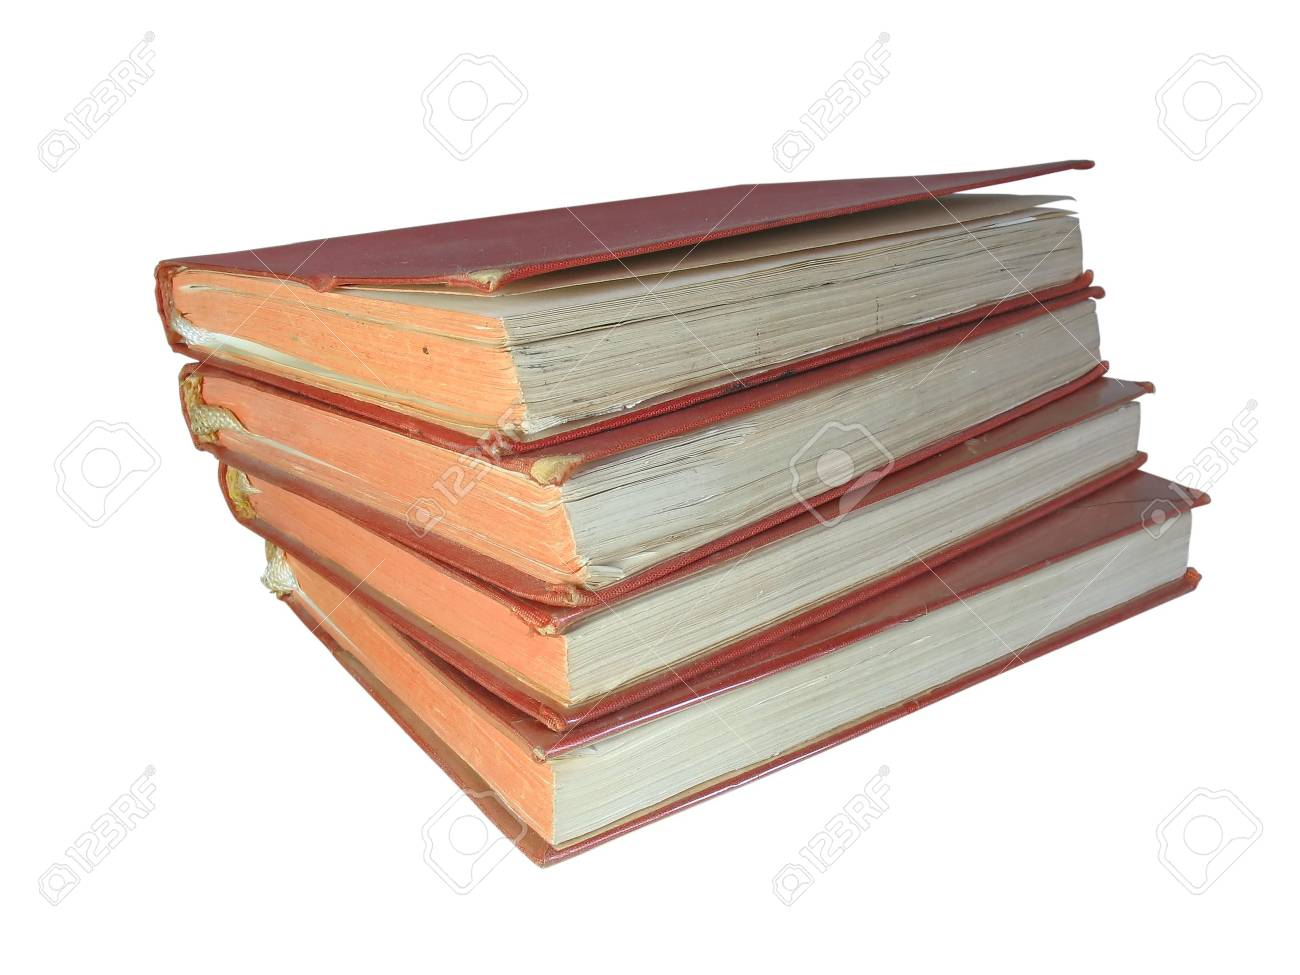 pile of old vintage books isolated on white background Stock Photo - 5231435